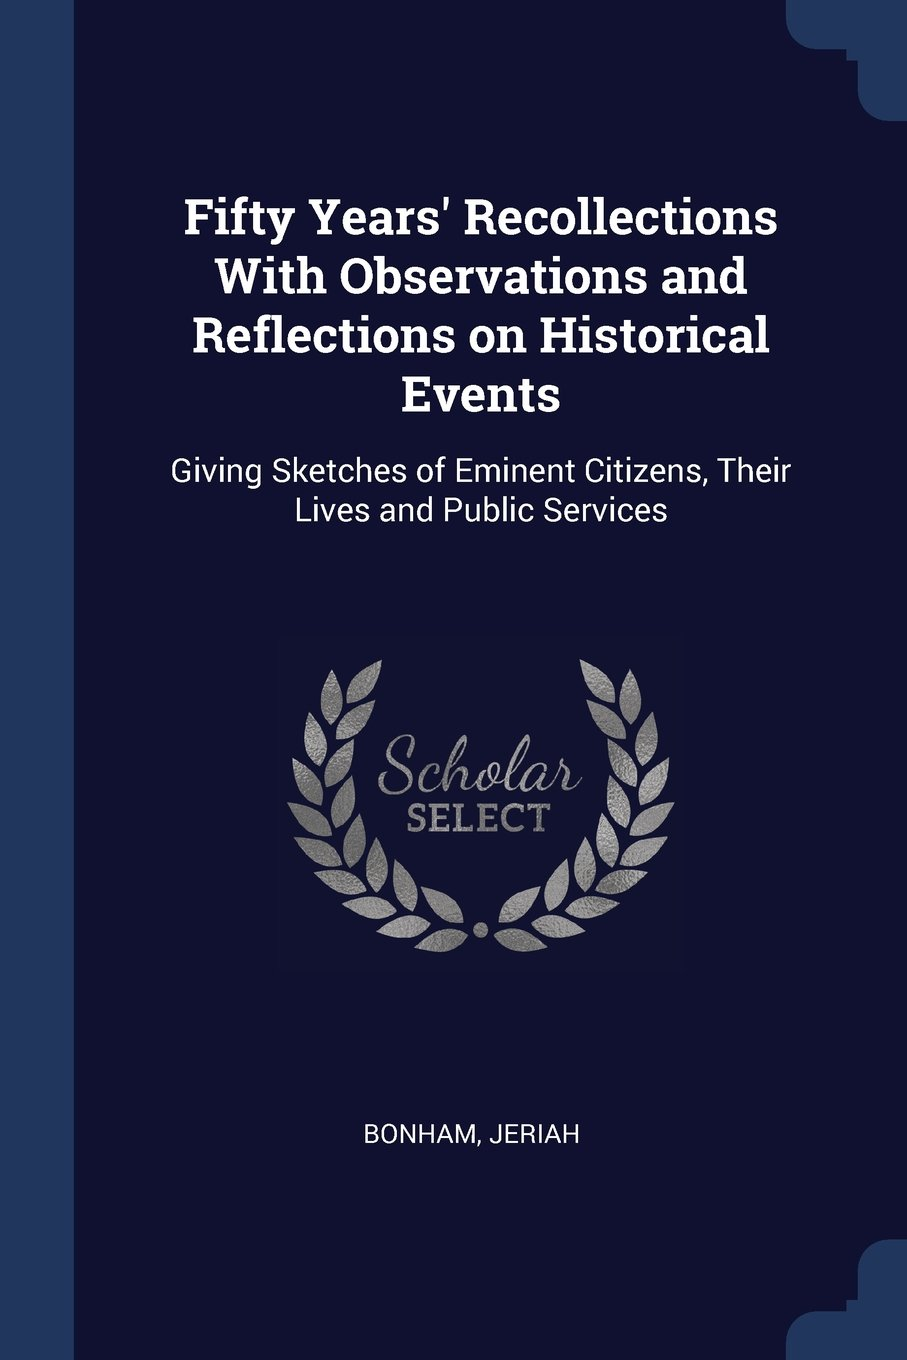 Download Fifty Years' Recollections With Observations and Reflections on Historical Events: Giving Sketches of Eminent Citizens, Their Lives and Public Services pdf